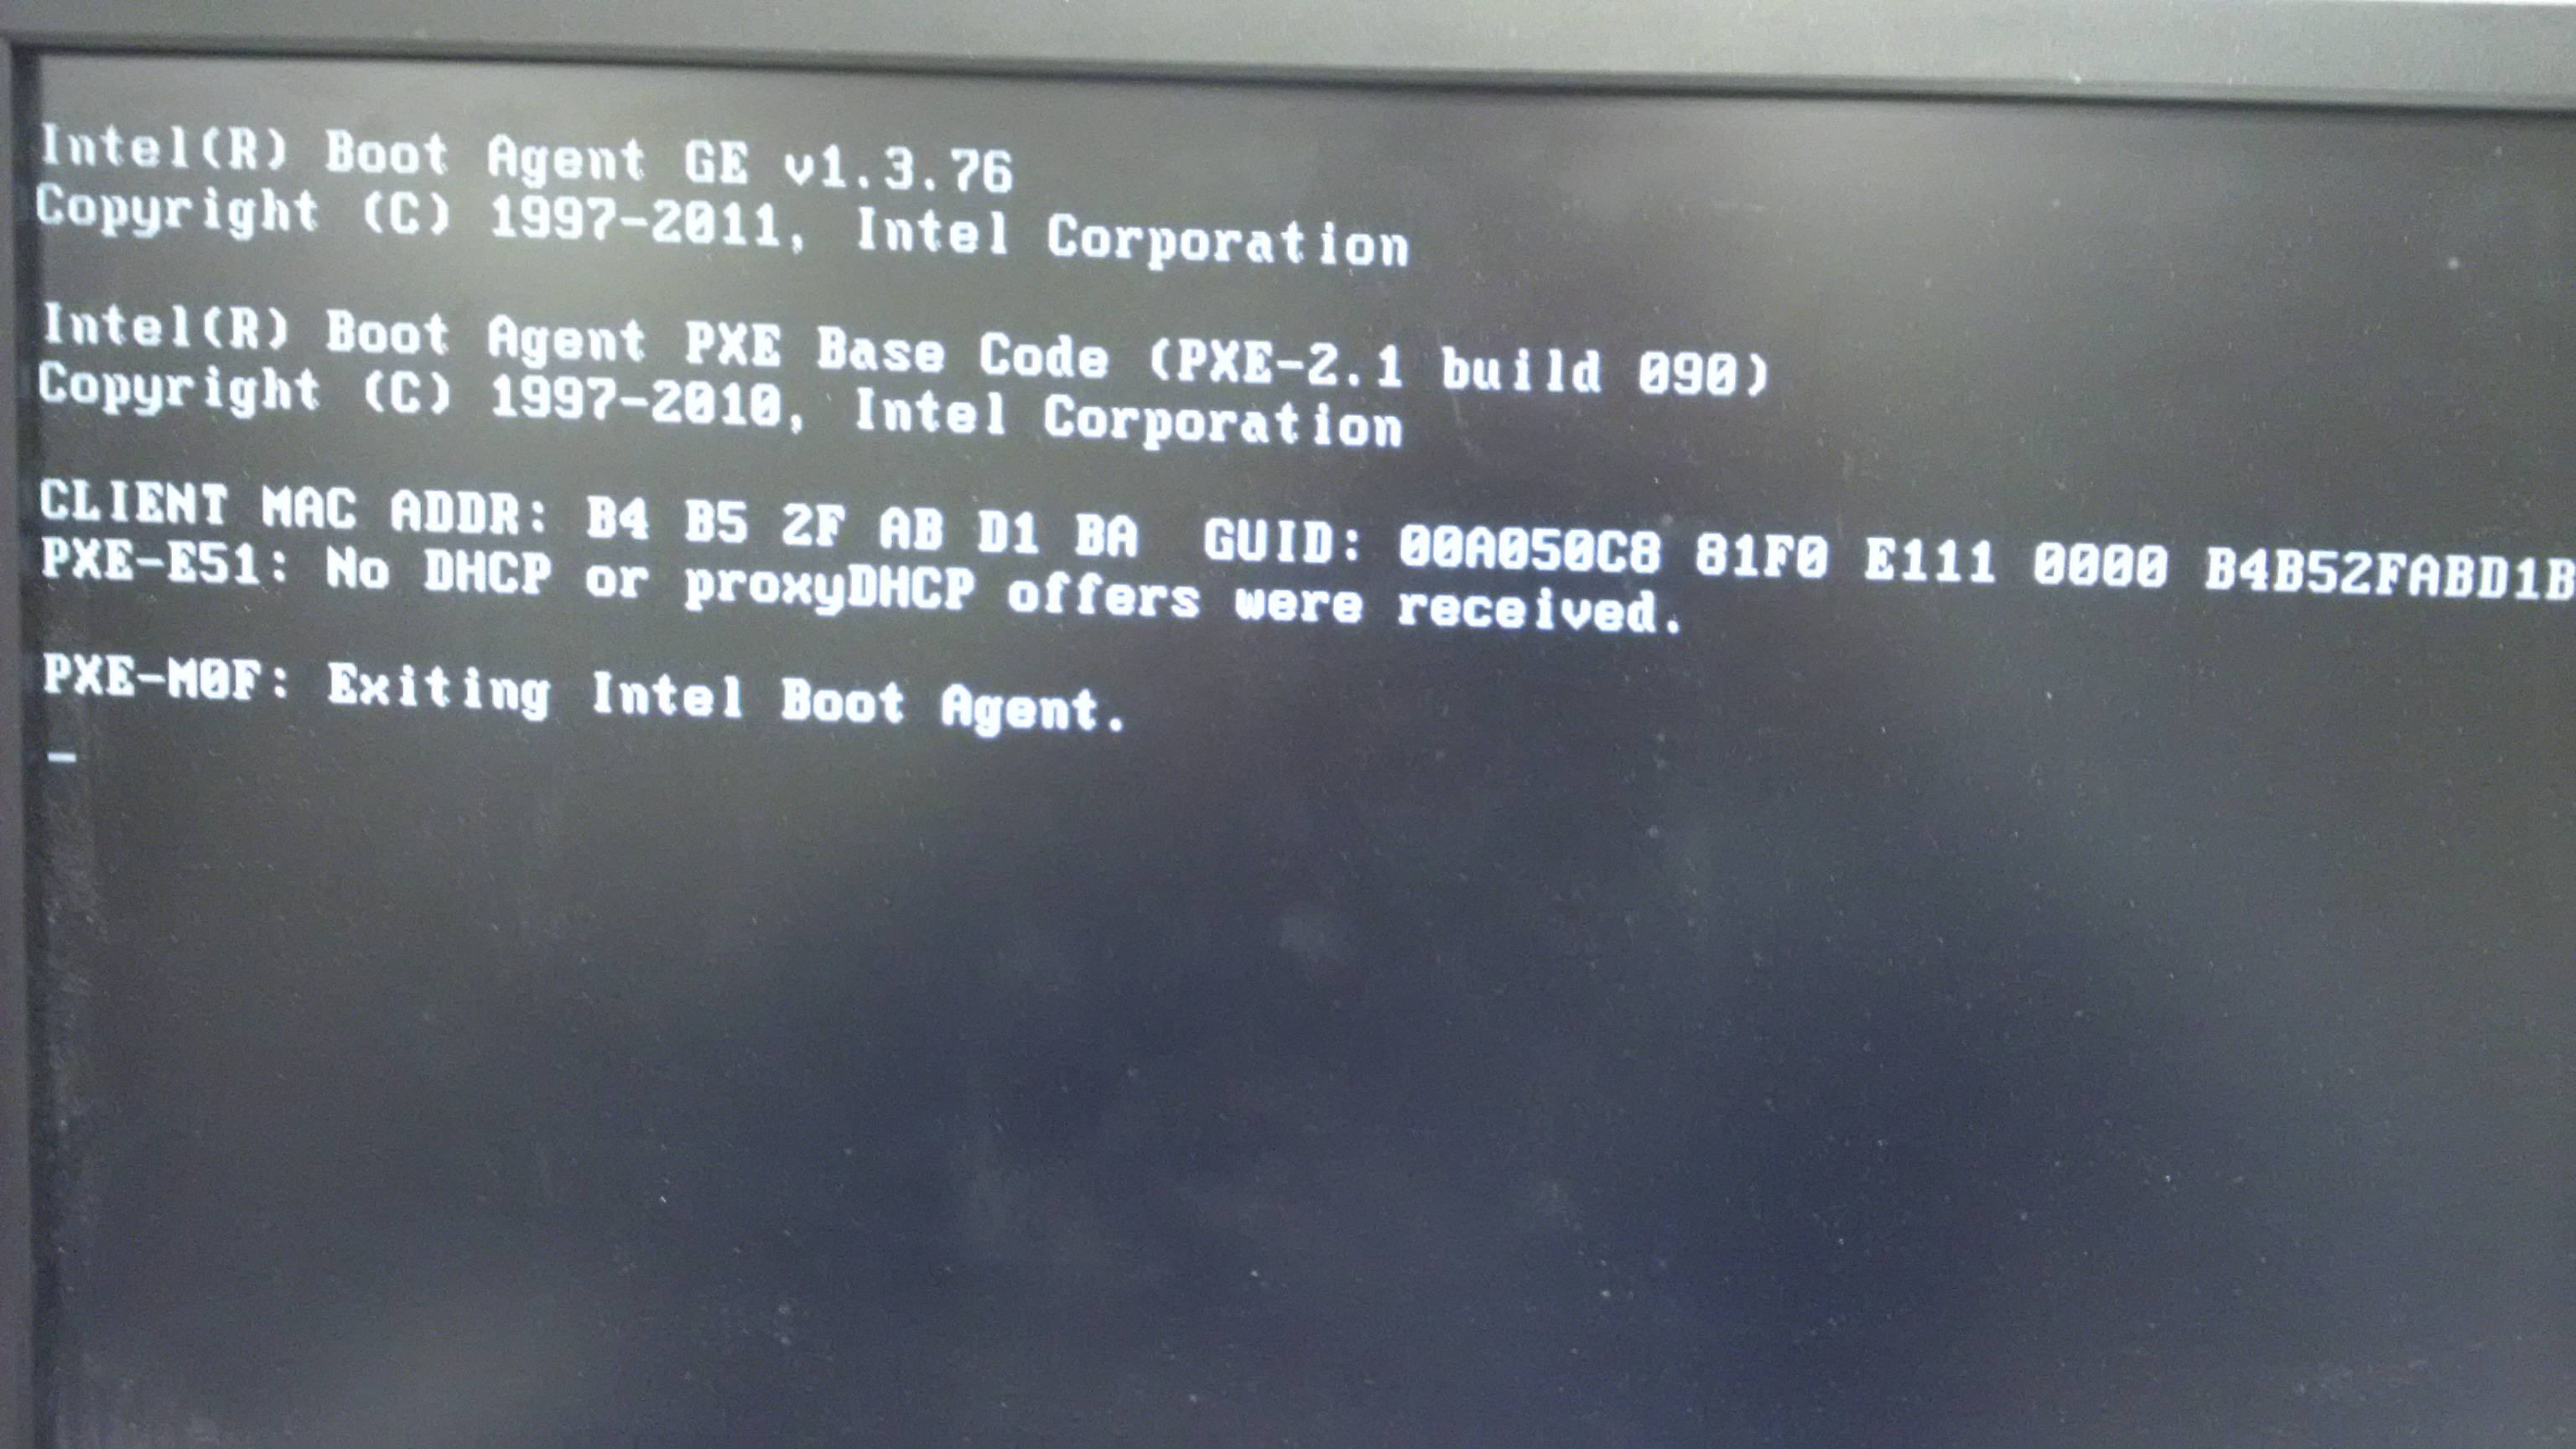 PXE DHCP issues